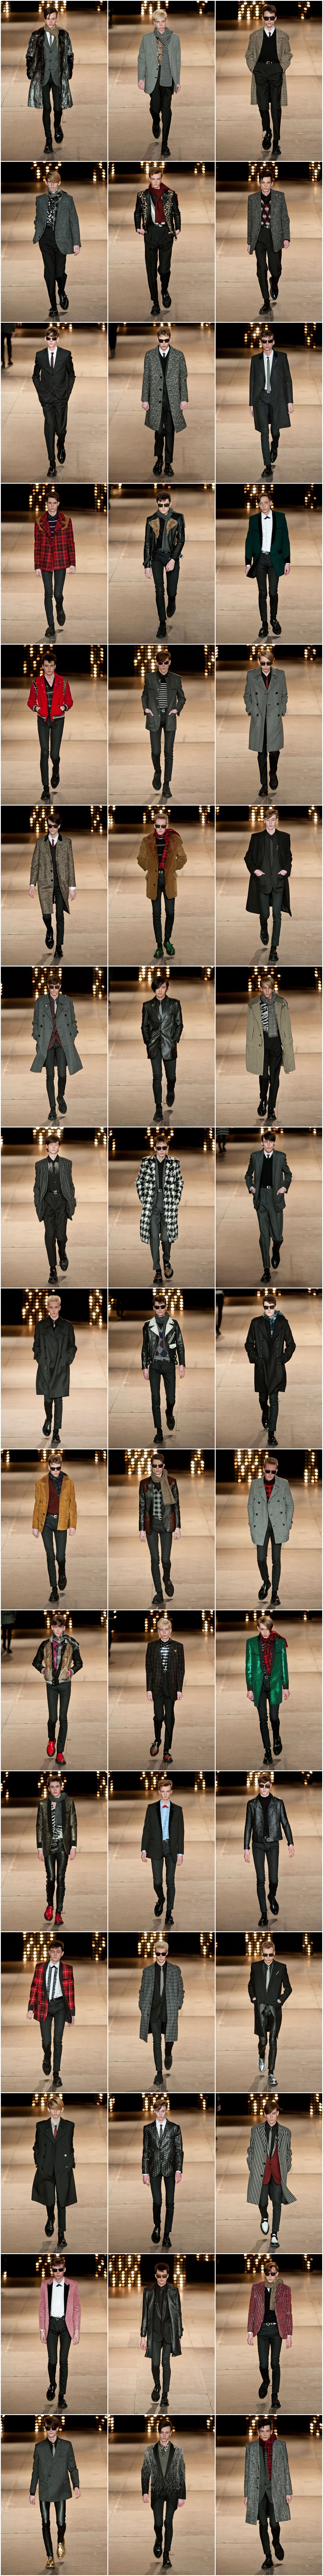 saint-laurent-fall-winter-2014-fashion4addicts.com